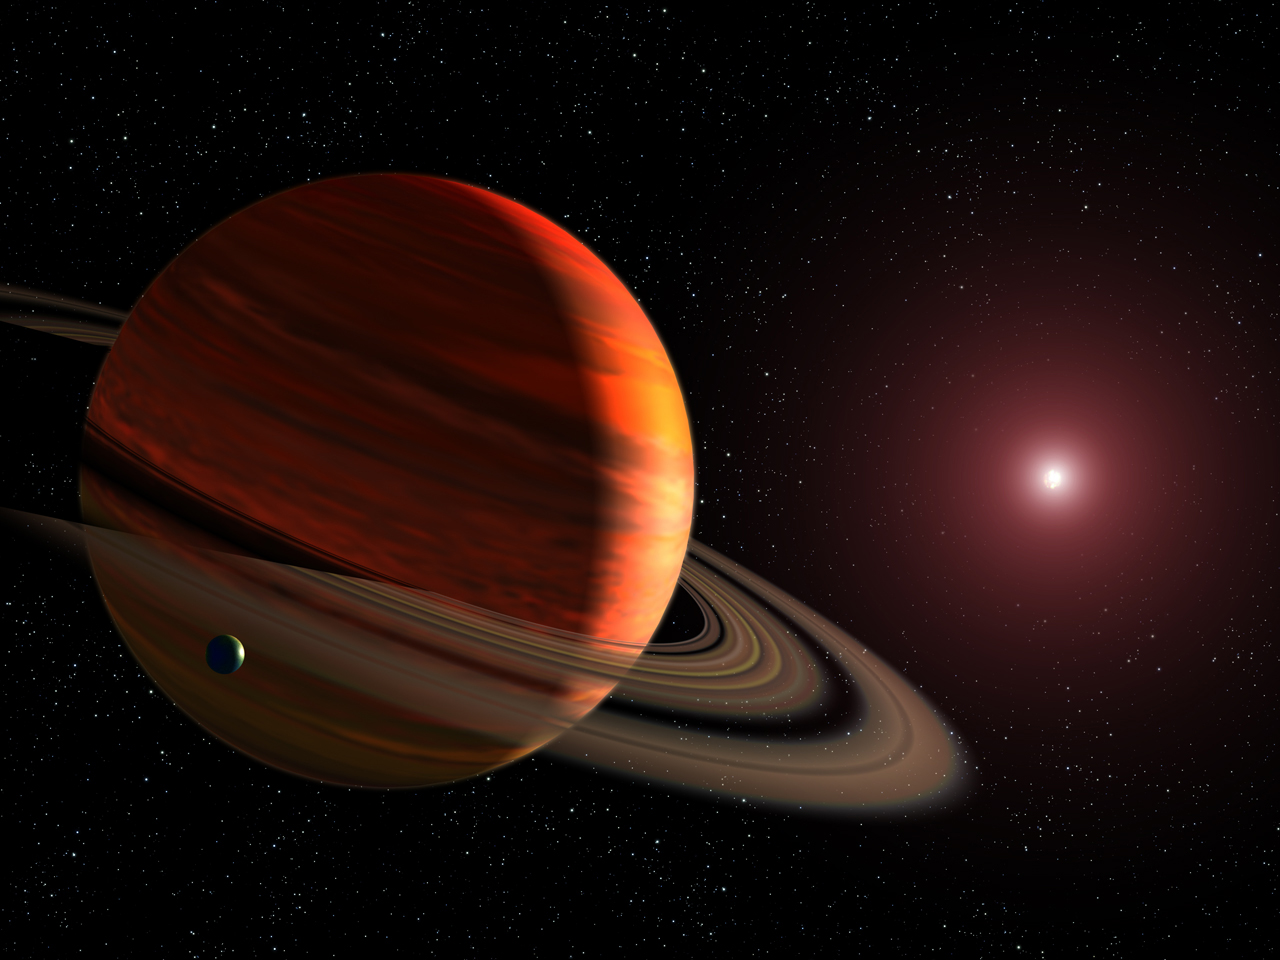 File:Giant planet orbiting red qwart.jpg